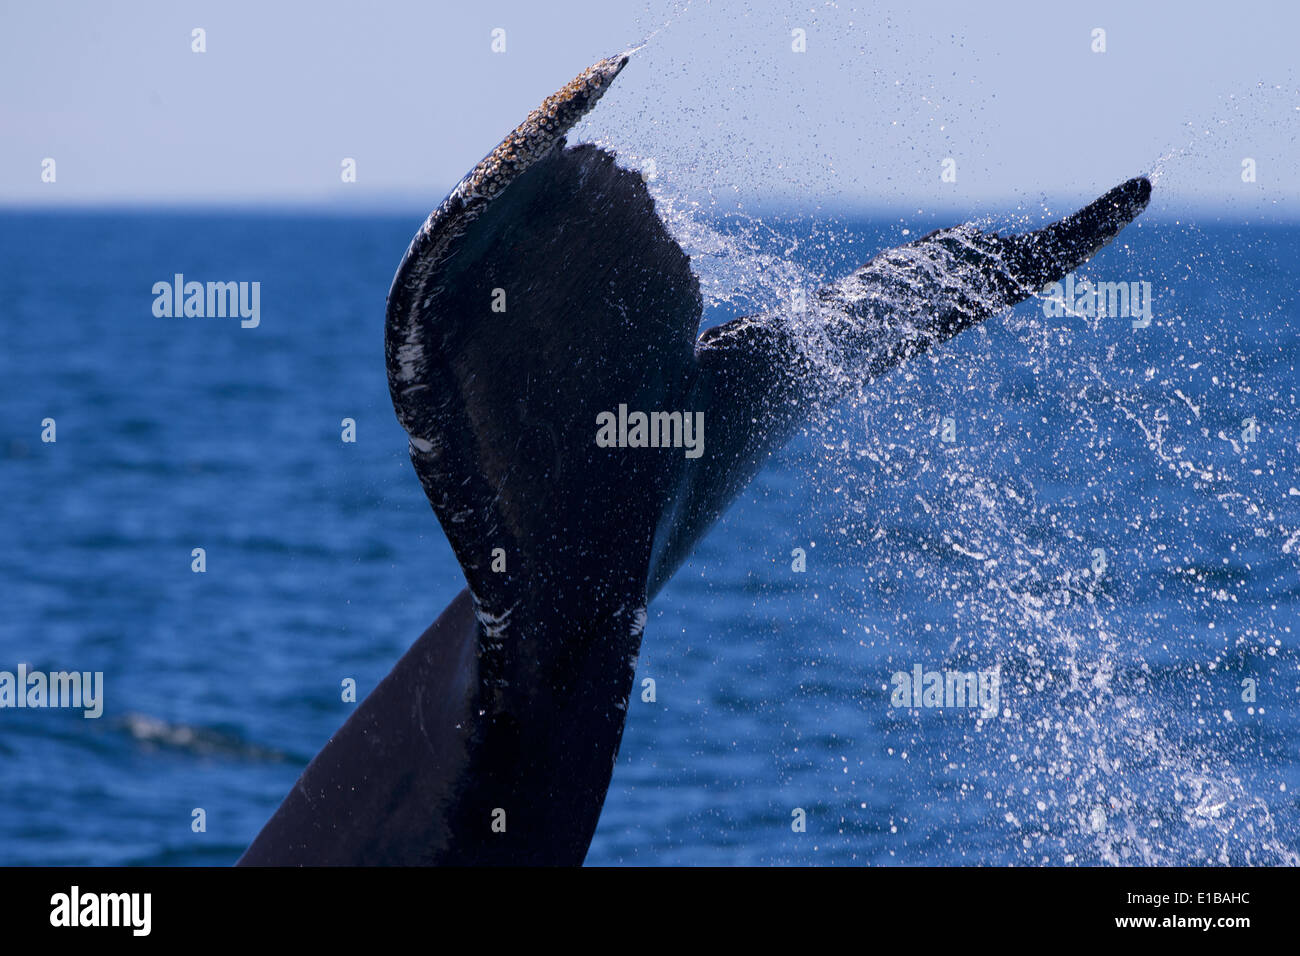 Humpback Whale (Balaenoptera novaeangliae)  slapping its fluke against the surface of the water, behaviour known as lobtailing. - Stock Image